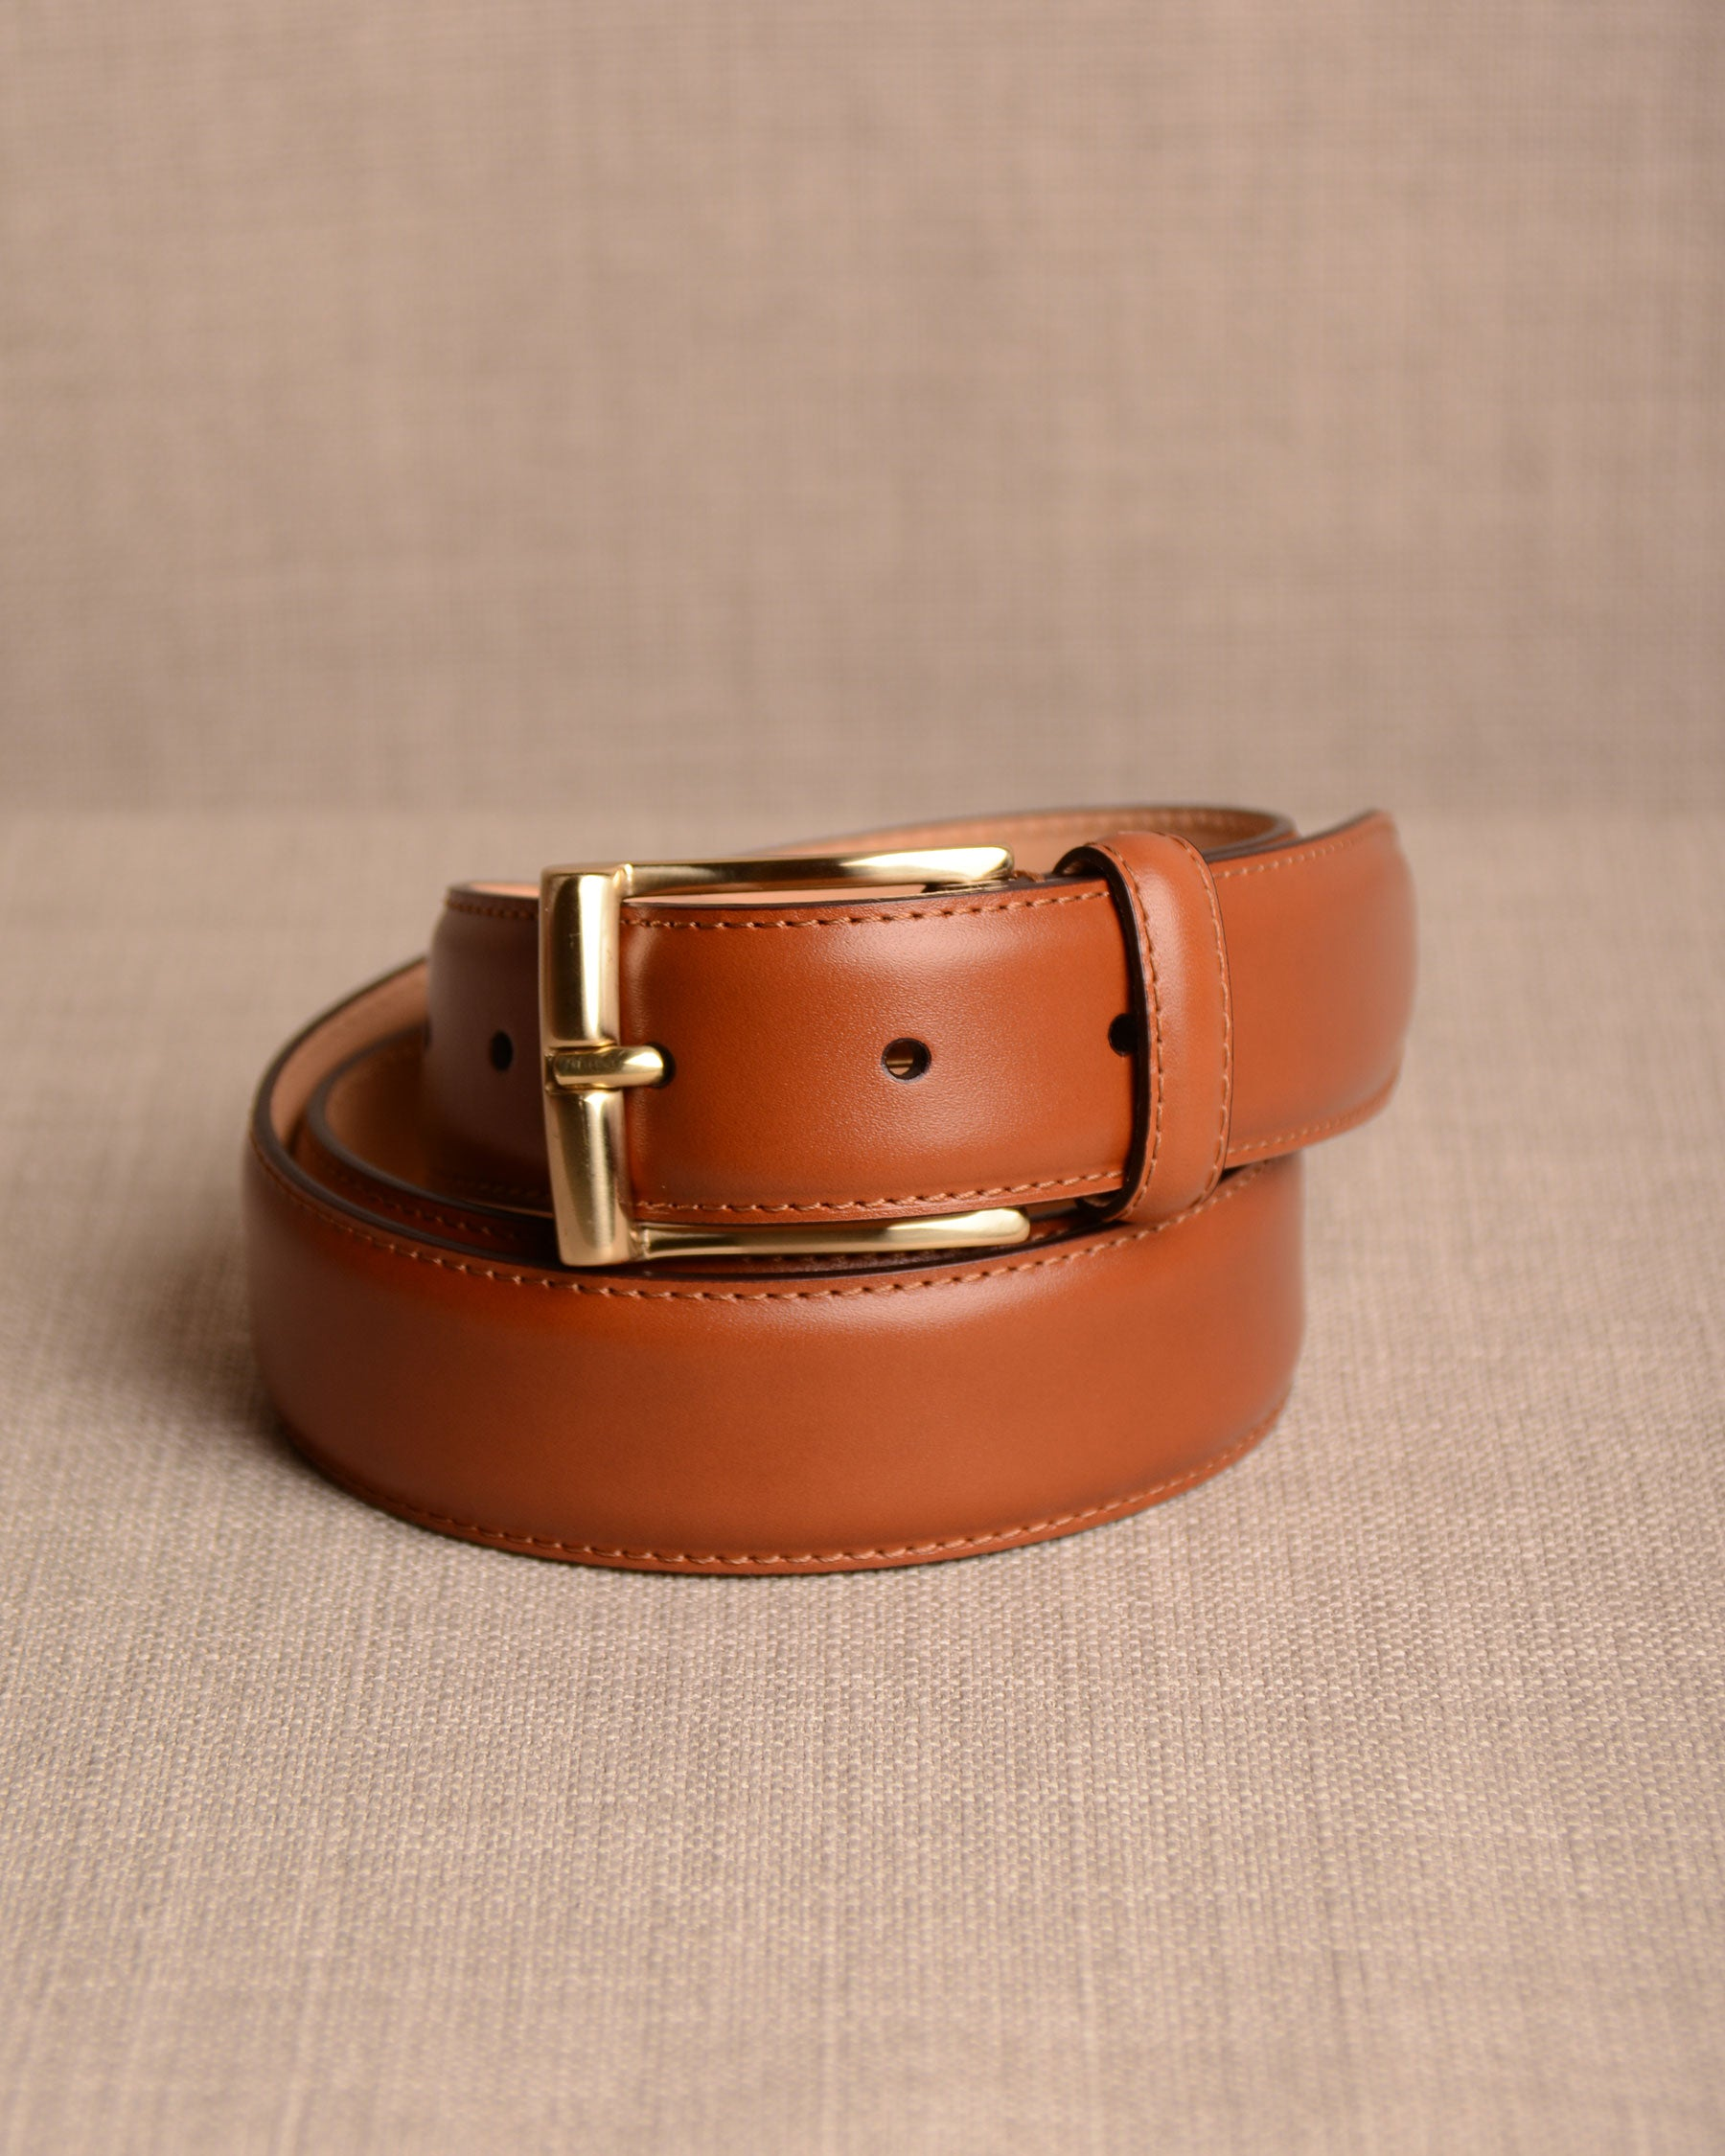 Crockett & Jones - Belt Tan Calf